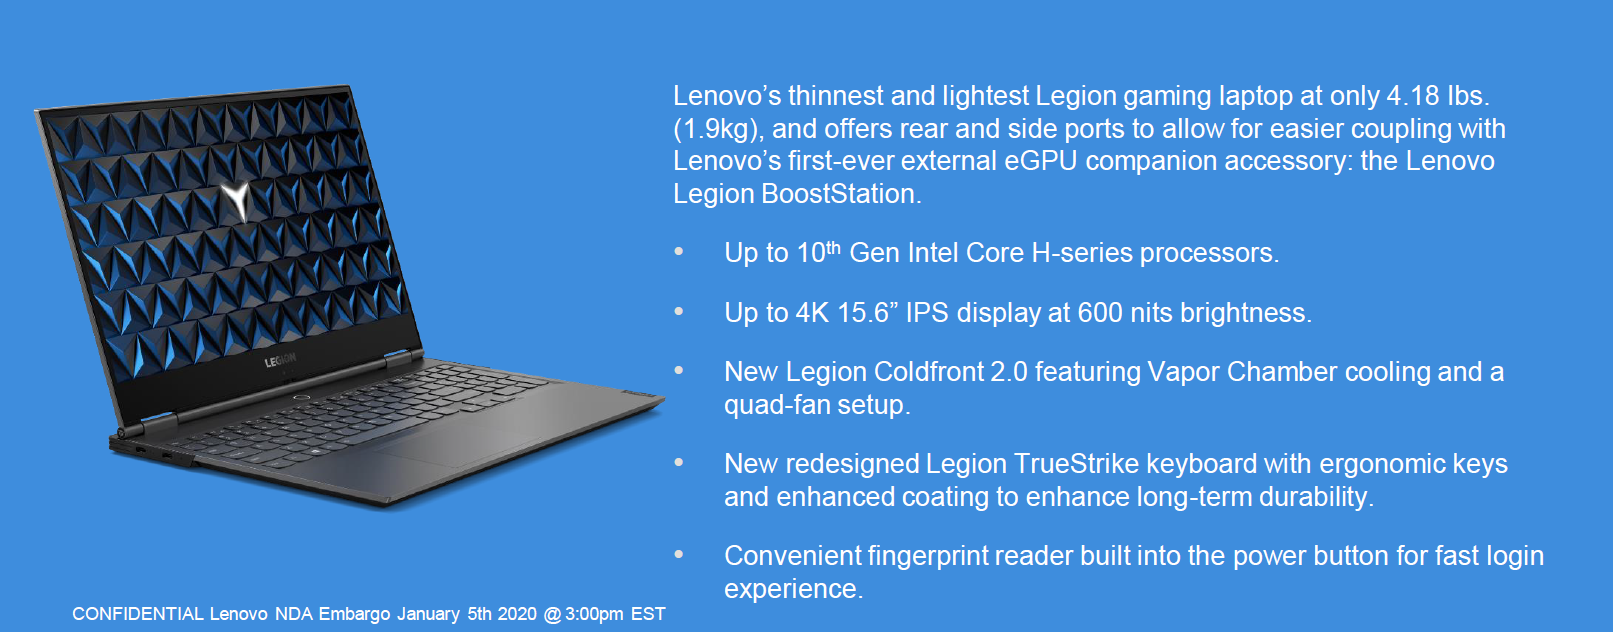 Ces 2020: lenovo unveils new gaming laptops, egpus, monitors & accessories for 2020 - onmsft. Com - january 5, 2020